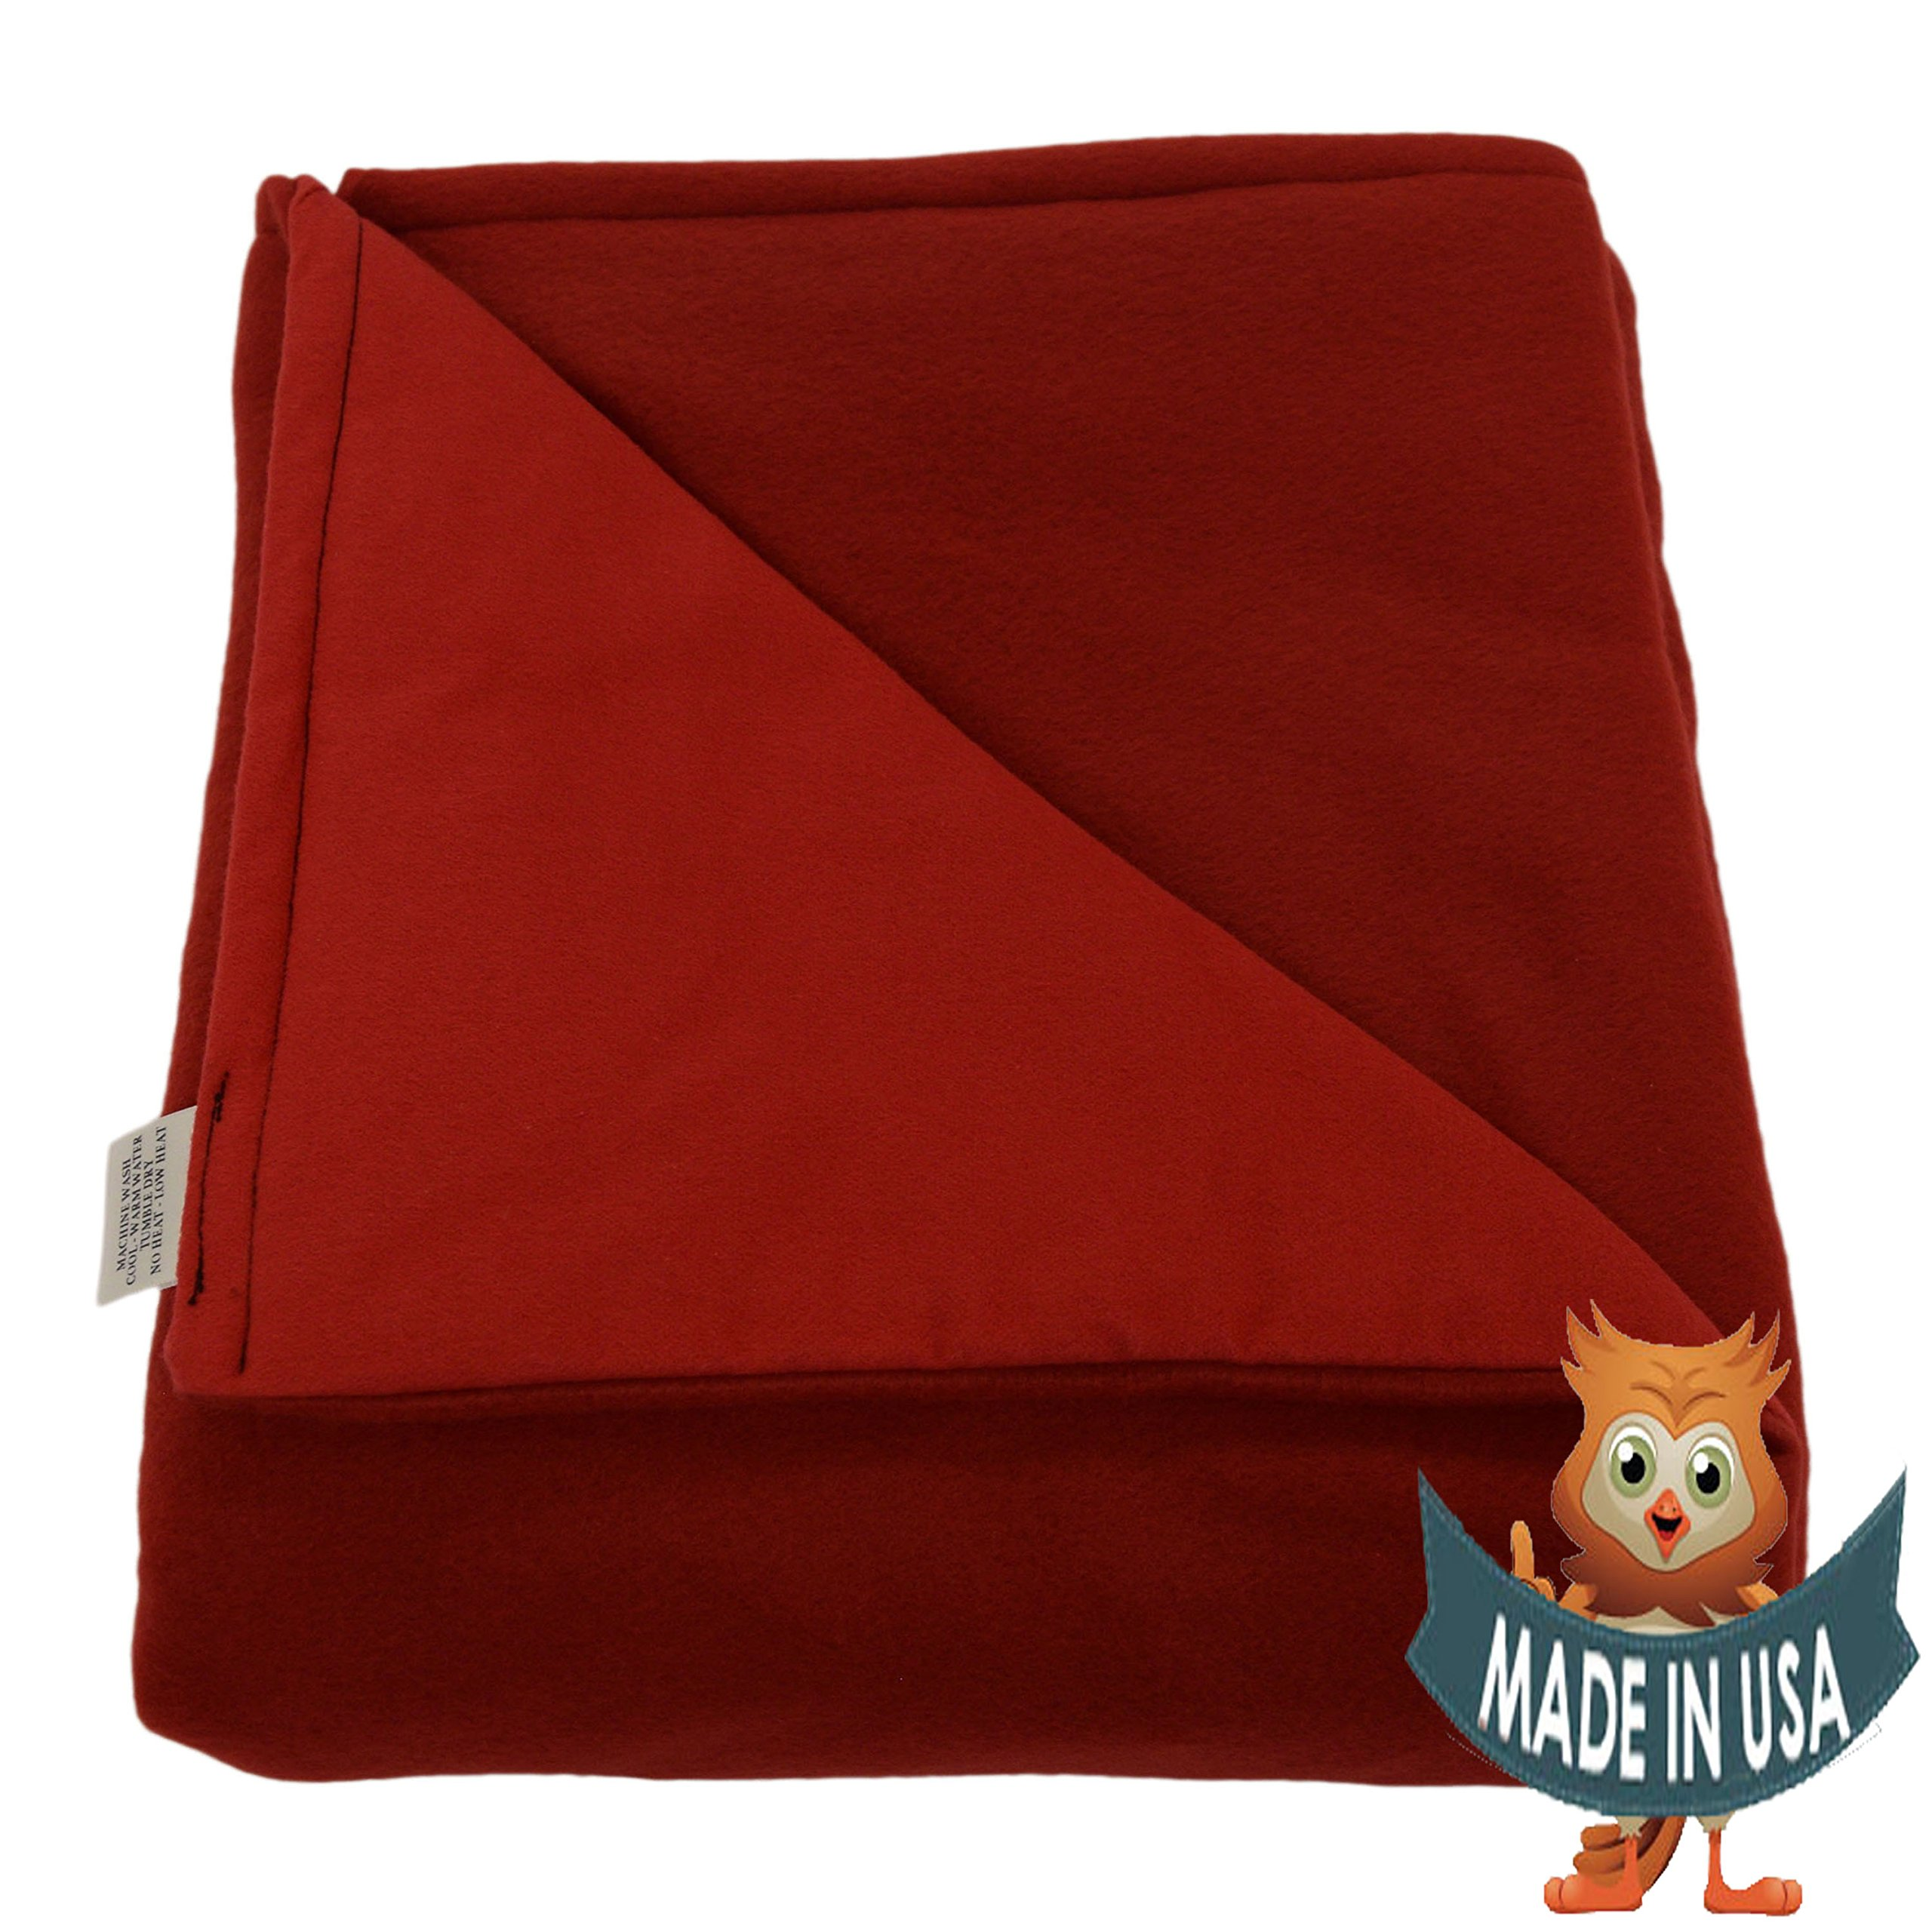 Adult Large Weighted Blanket by Sensory Goods 15lb Medium Pressure - Red - Fleece/Flannel (42'' x 72'')